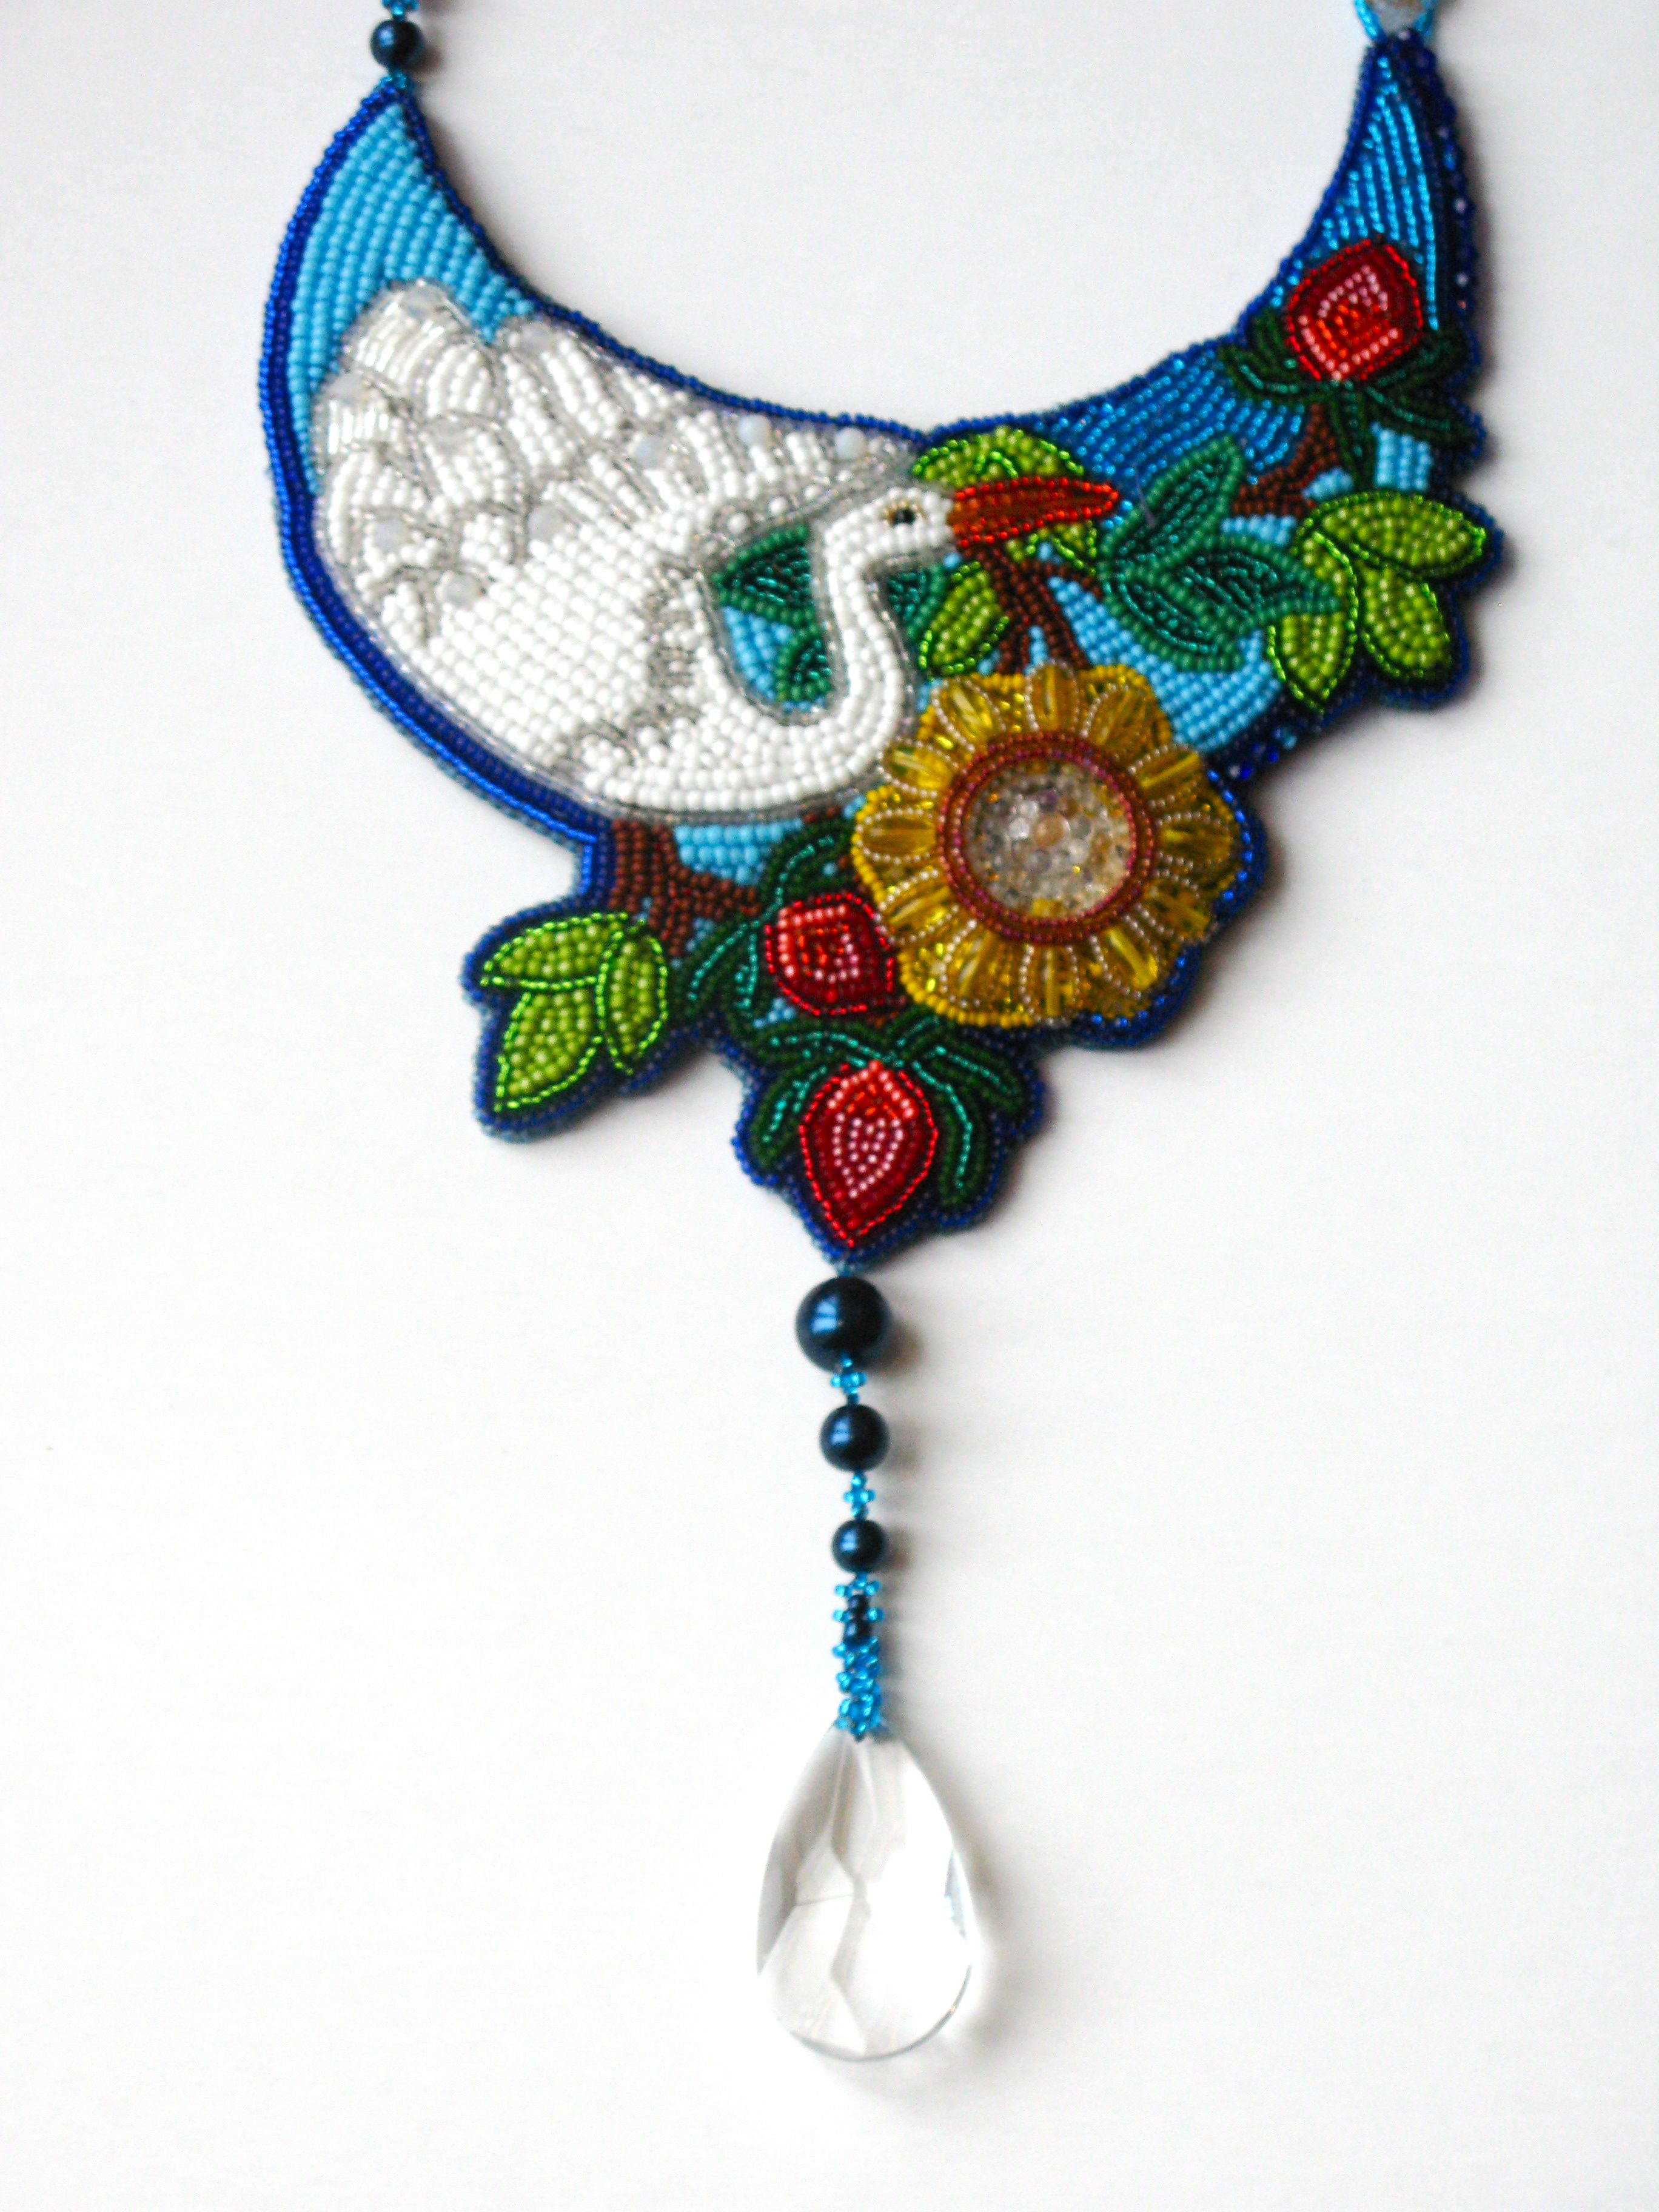 Embroidered jewelry bead embroidery pinterest